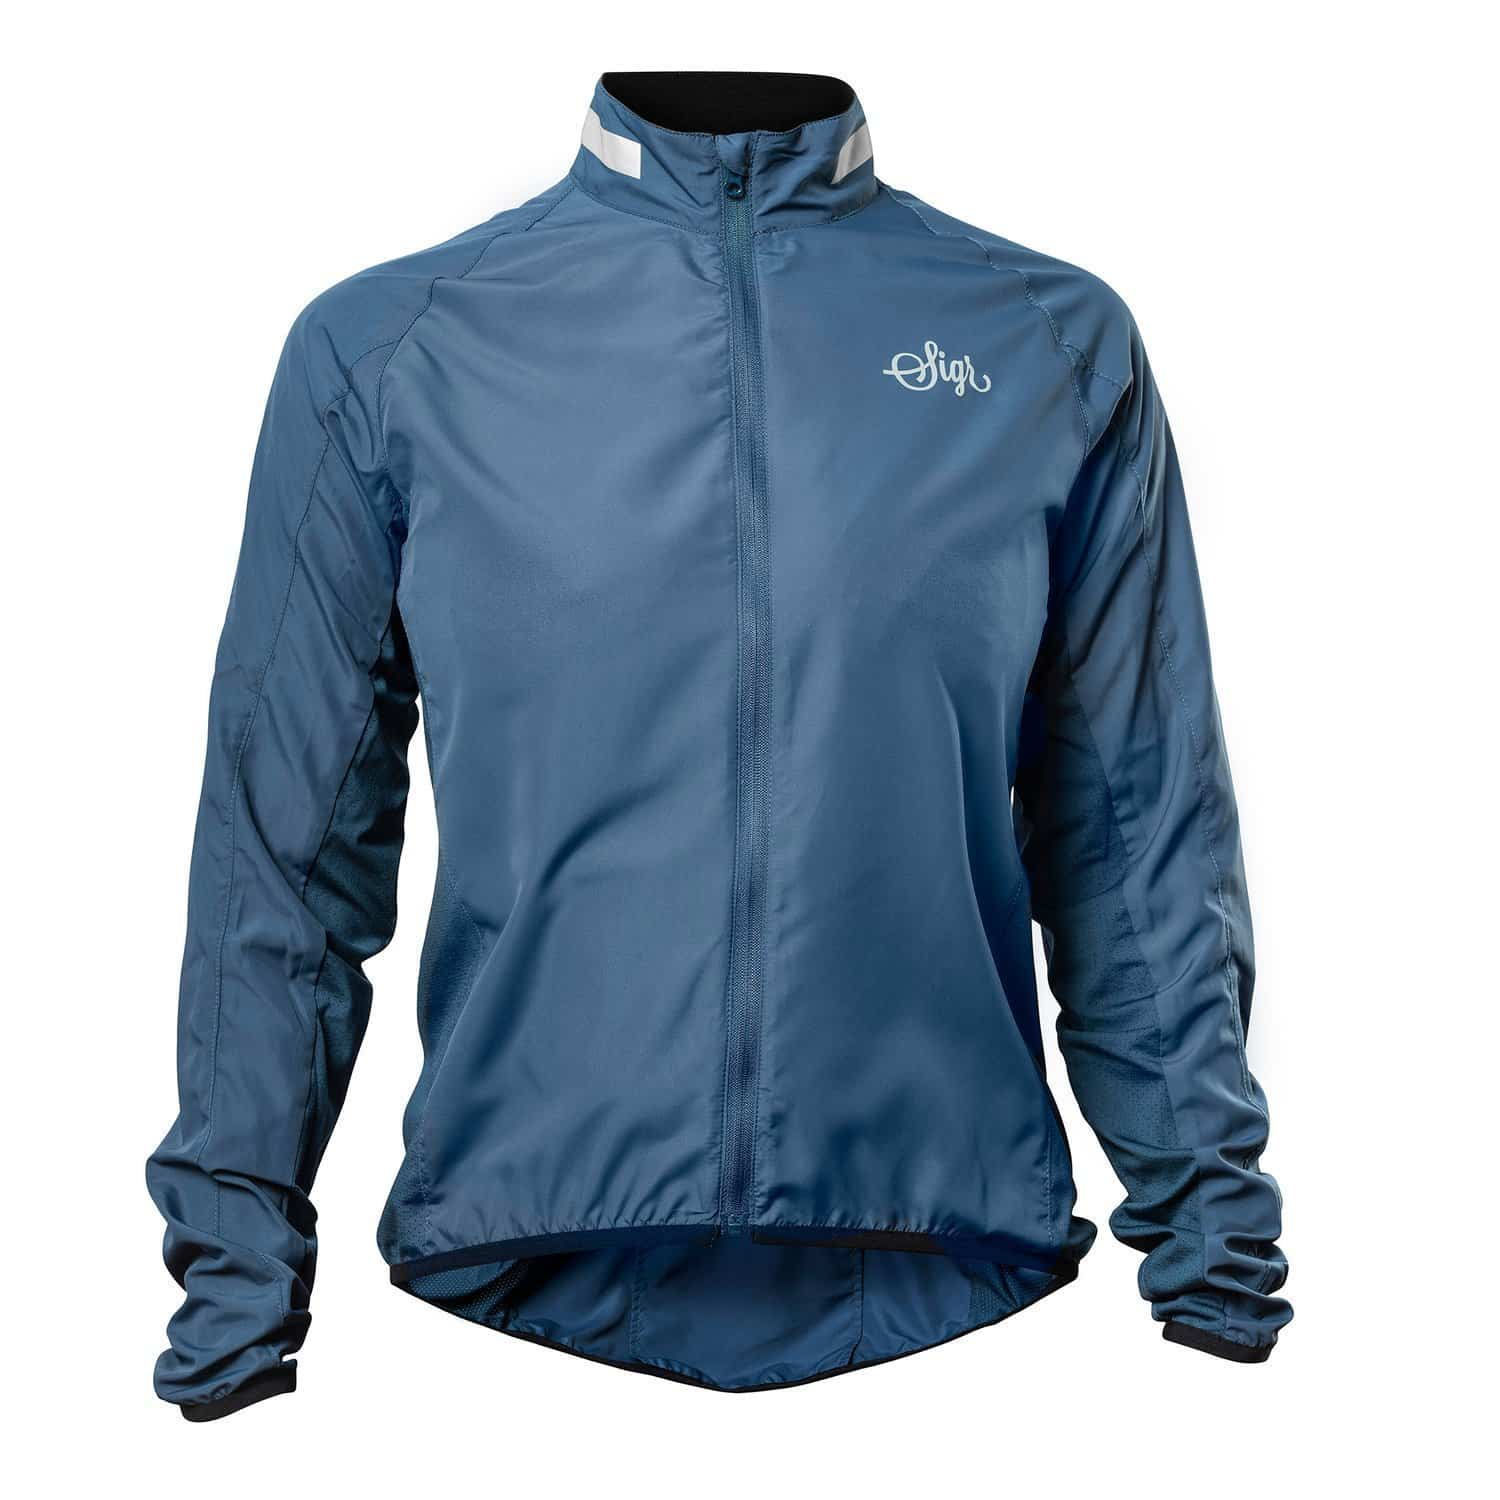 SIGR 'Treriksröset Blue' Pack Jacket for Women